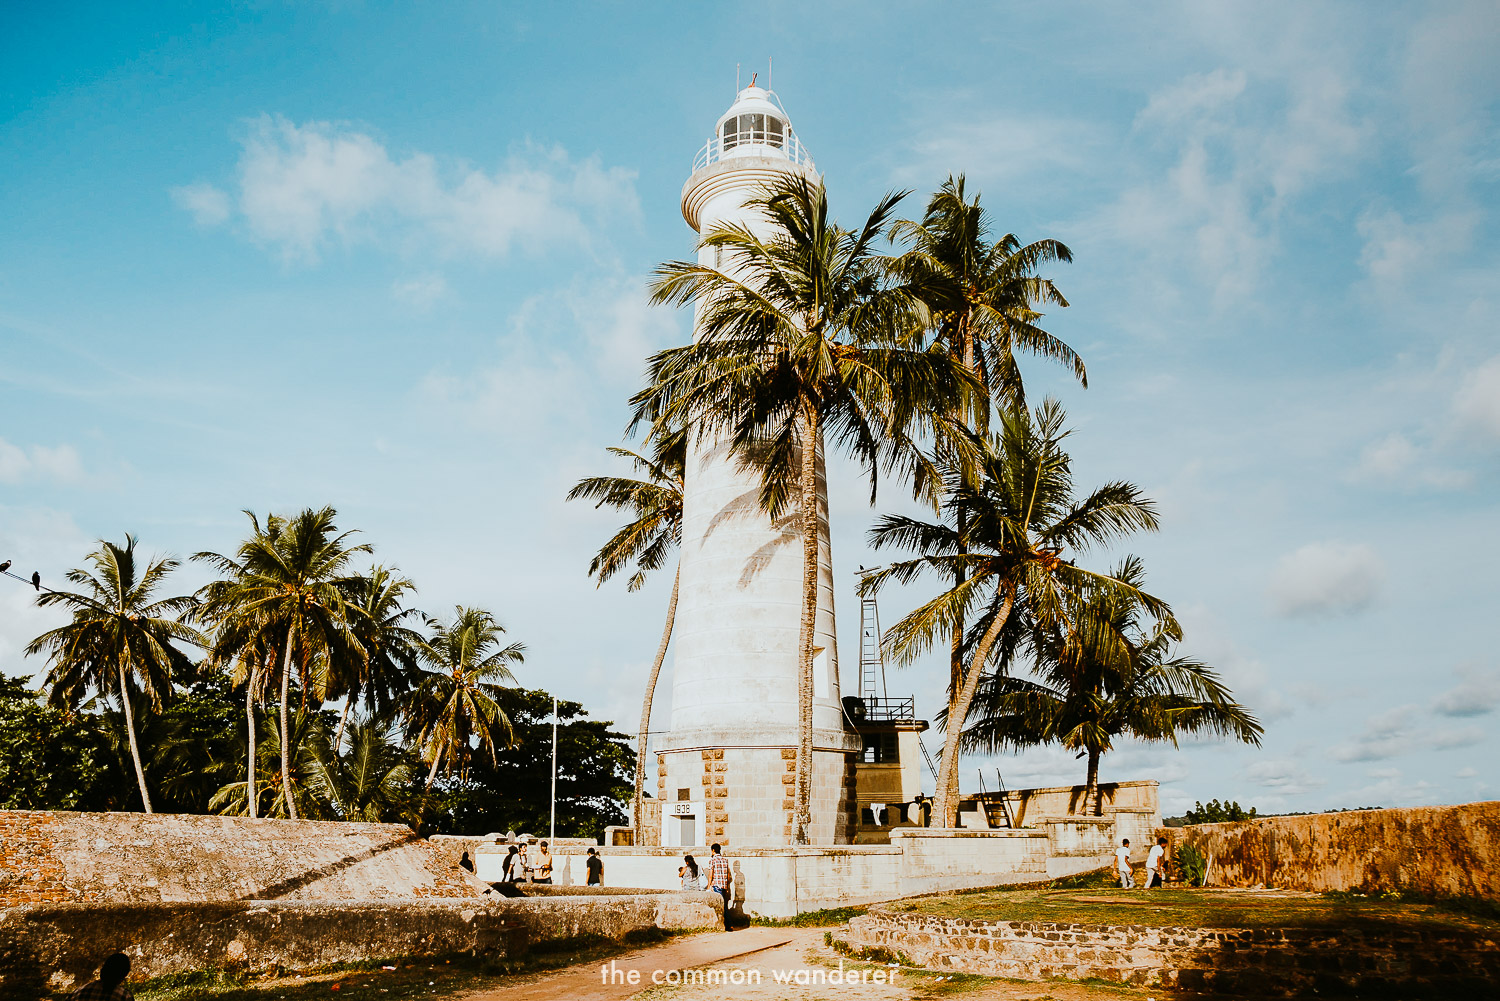 Sri Lanka Travel Guide - Everything to know, see and do in Sri Lanka